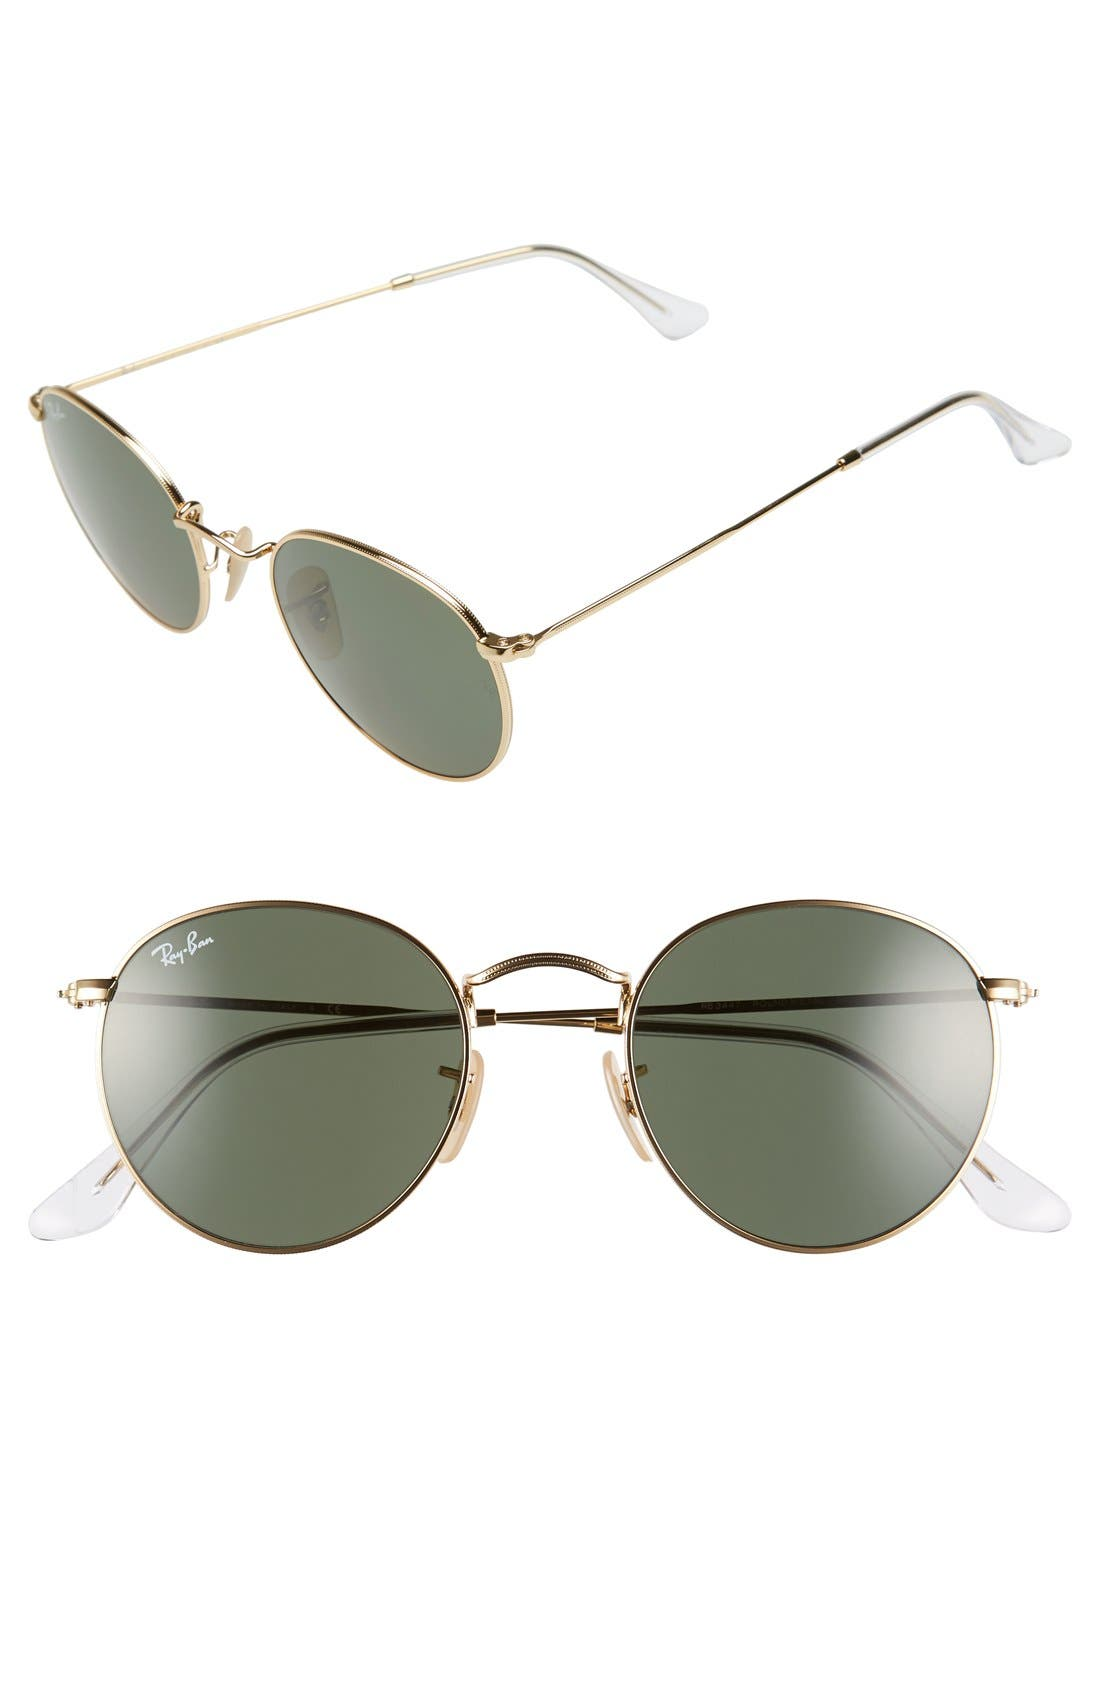 50mm Round Sunglasses,                             Main thumbnail 1, color,                             Gold/ Green